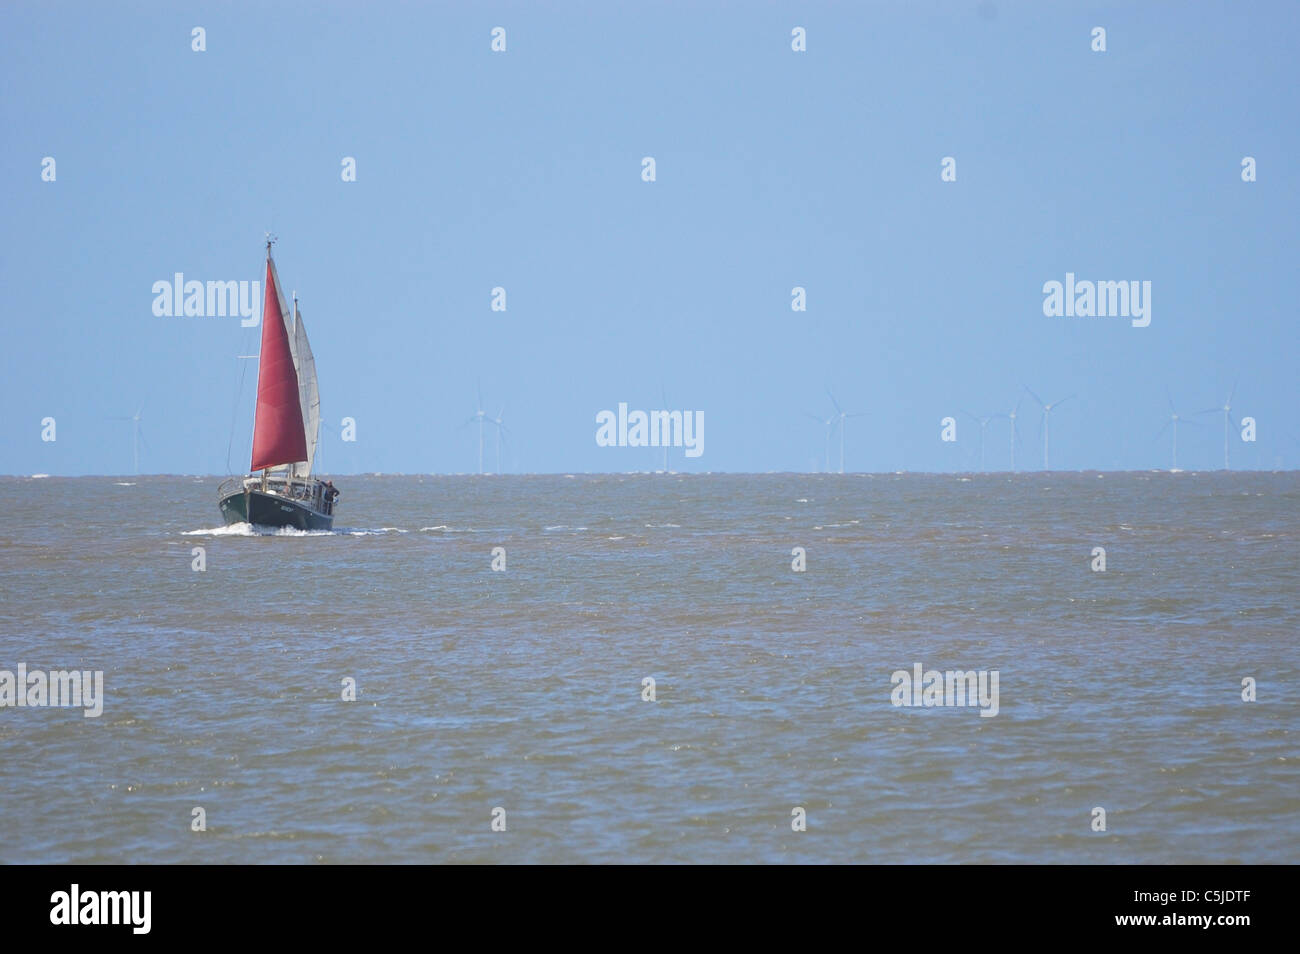 Yacht with red sail approaching mouth of Wyre Estuary Fleetwood - Stock Image